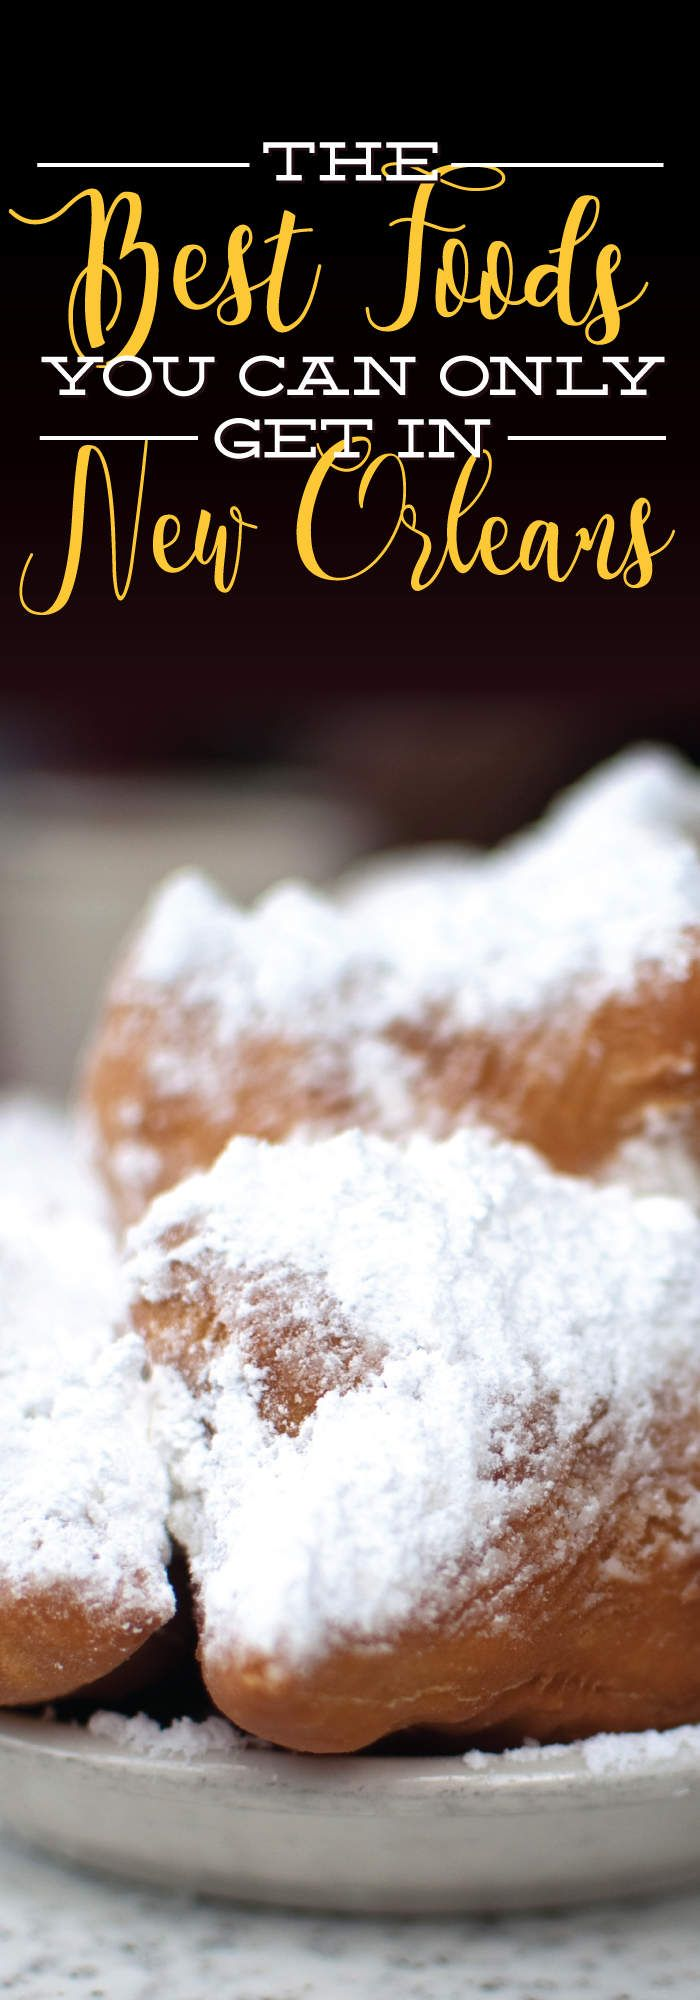 New Orleans is known for its food. These are the dishes that make the city so famous.